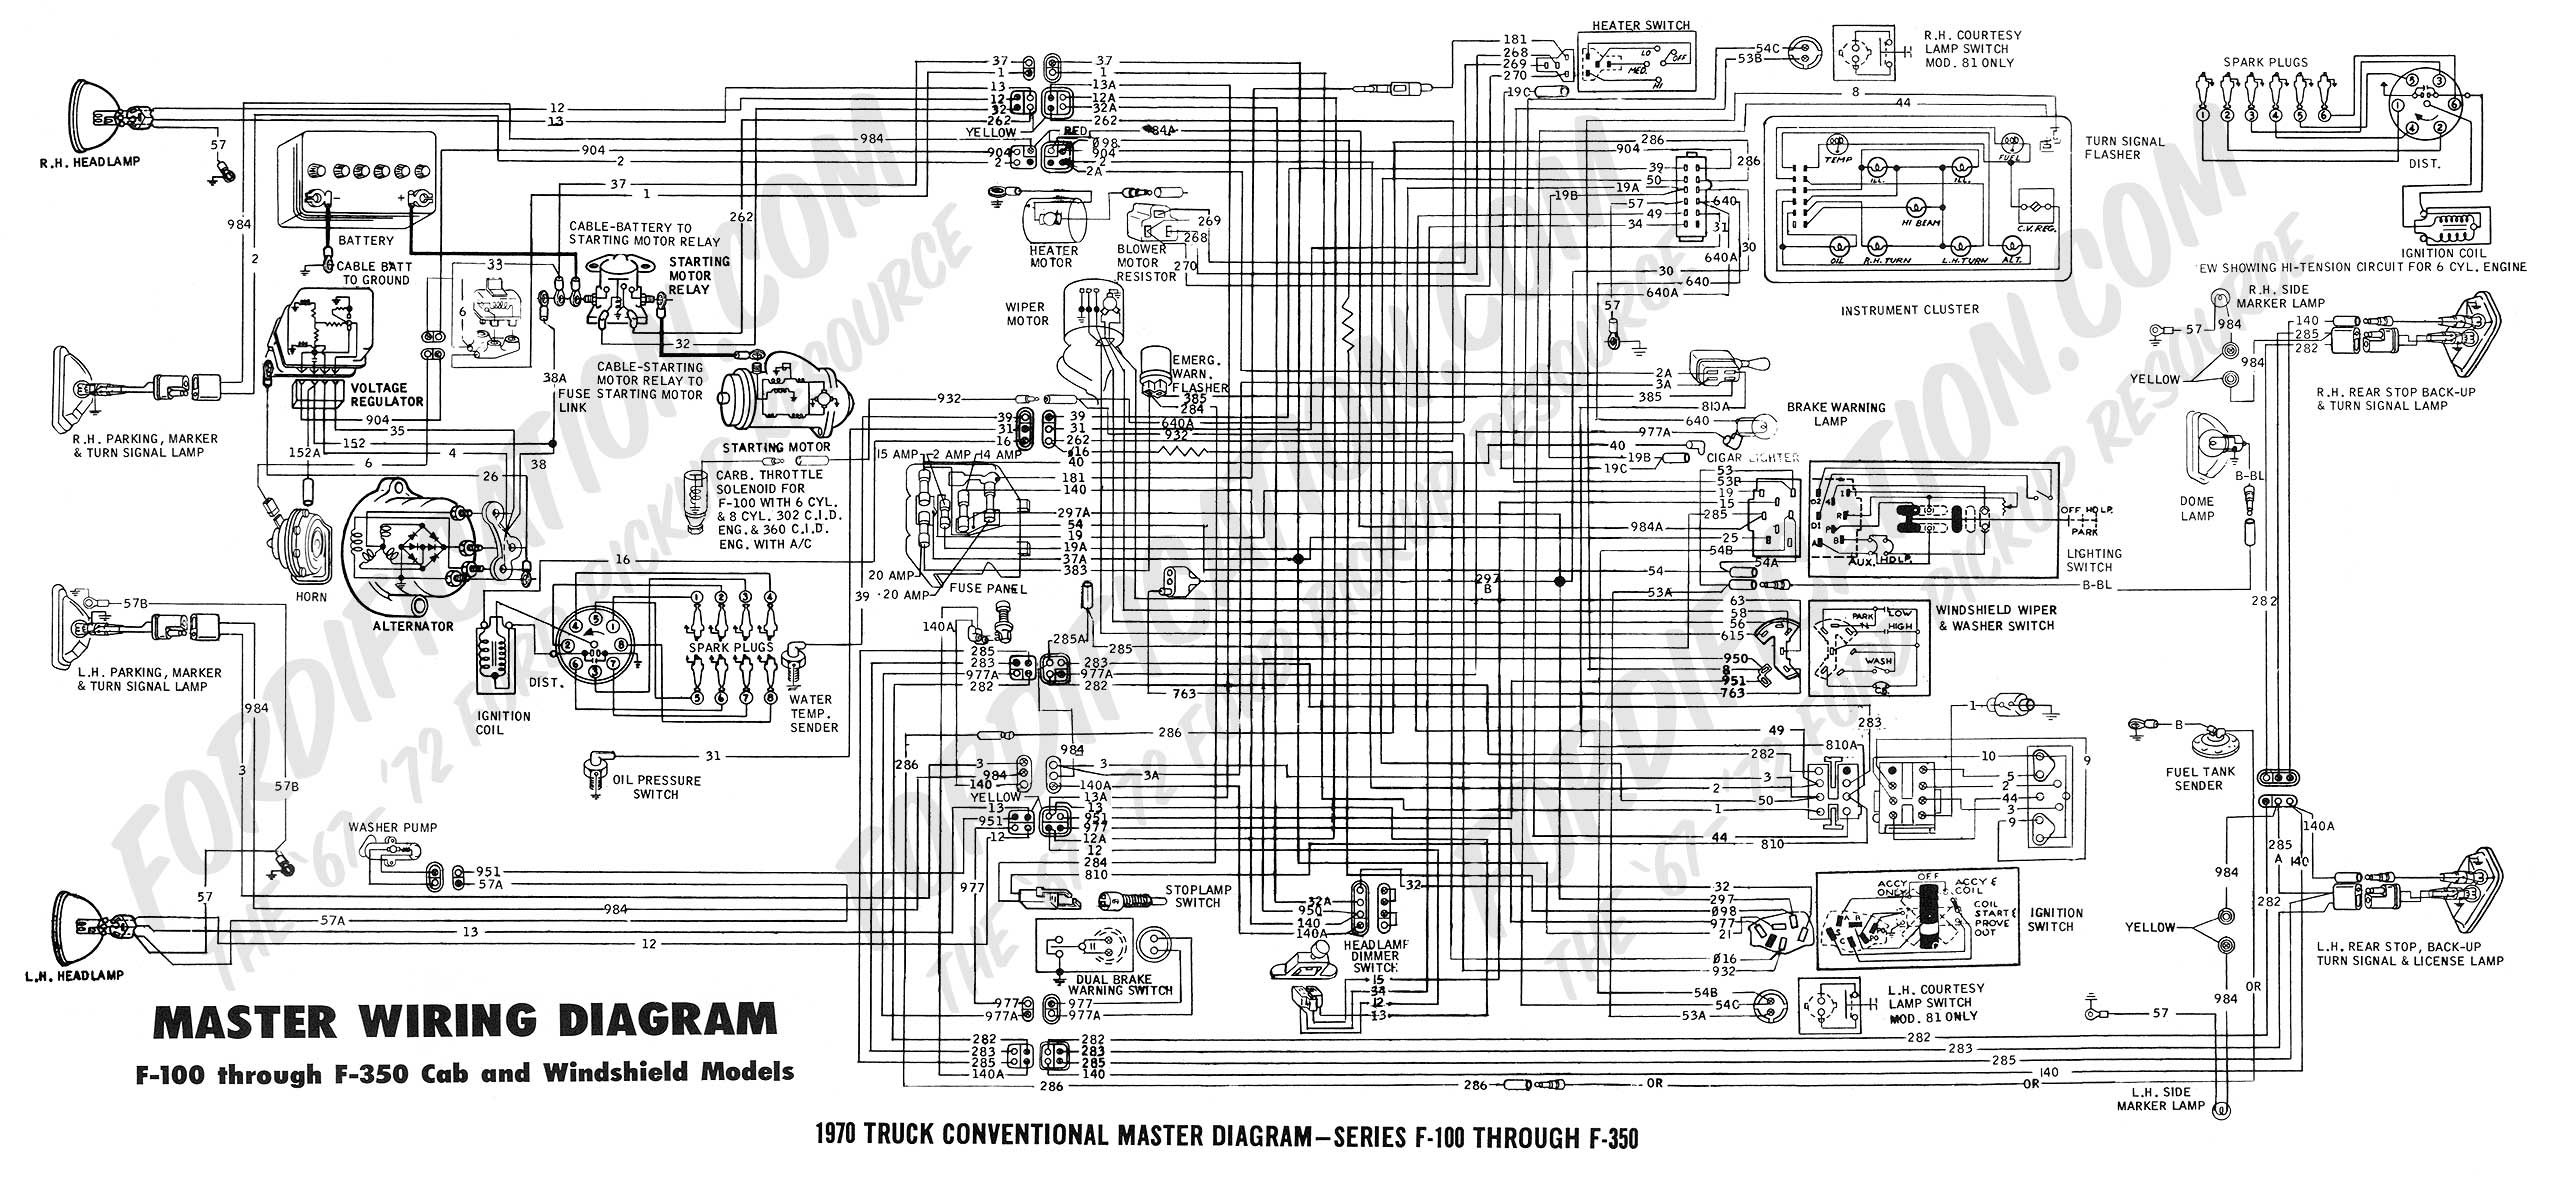 1972 Ford F100 Wiring Schematics Data Wiring Schema Ford Steering Box Diagram  1967 Ford Truck Steering Column Wiring Diagram